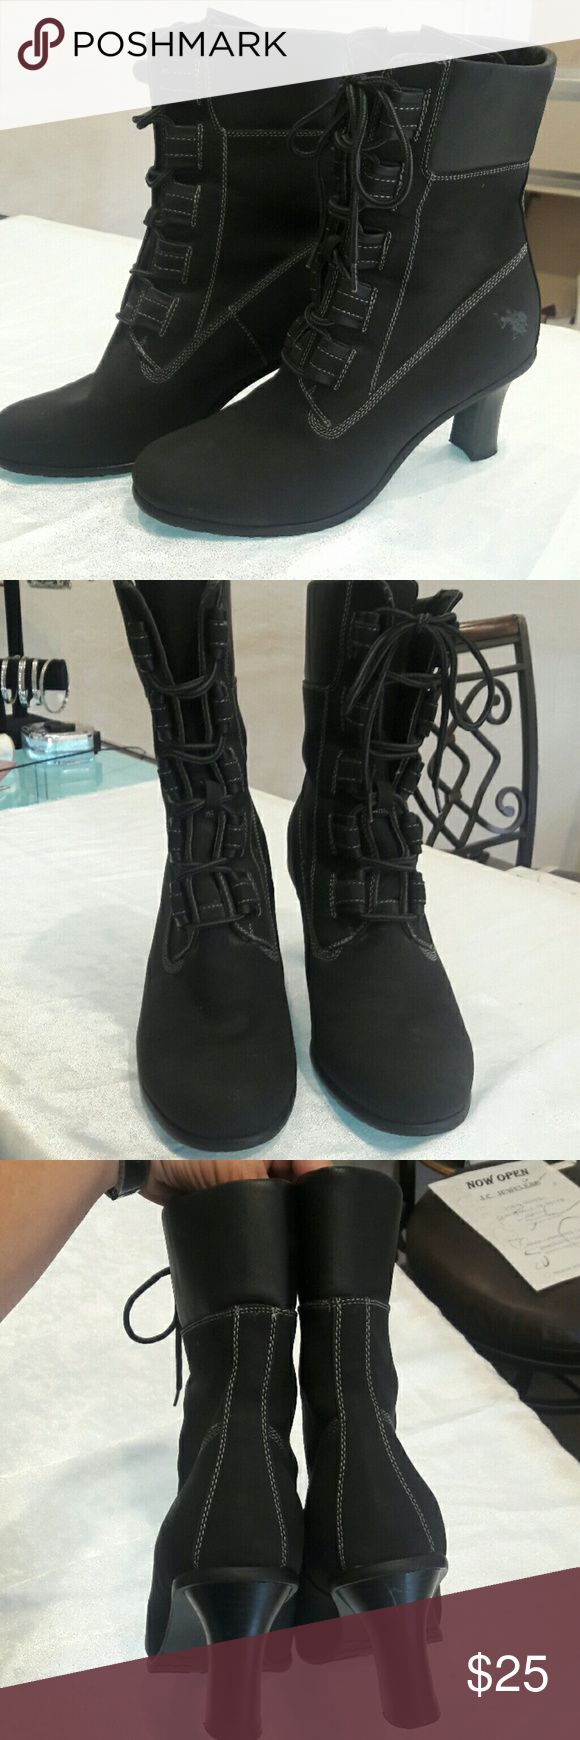 US Polo Association black boots size 8.5 These boots were worn maybe 3 times. Black suede type material. Front lace up. Size 8.5 Please see pictures for measurements and condition US Polo Association Shoes Lace Up Boots